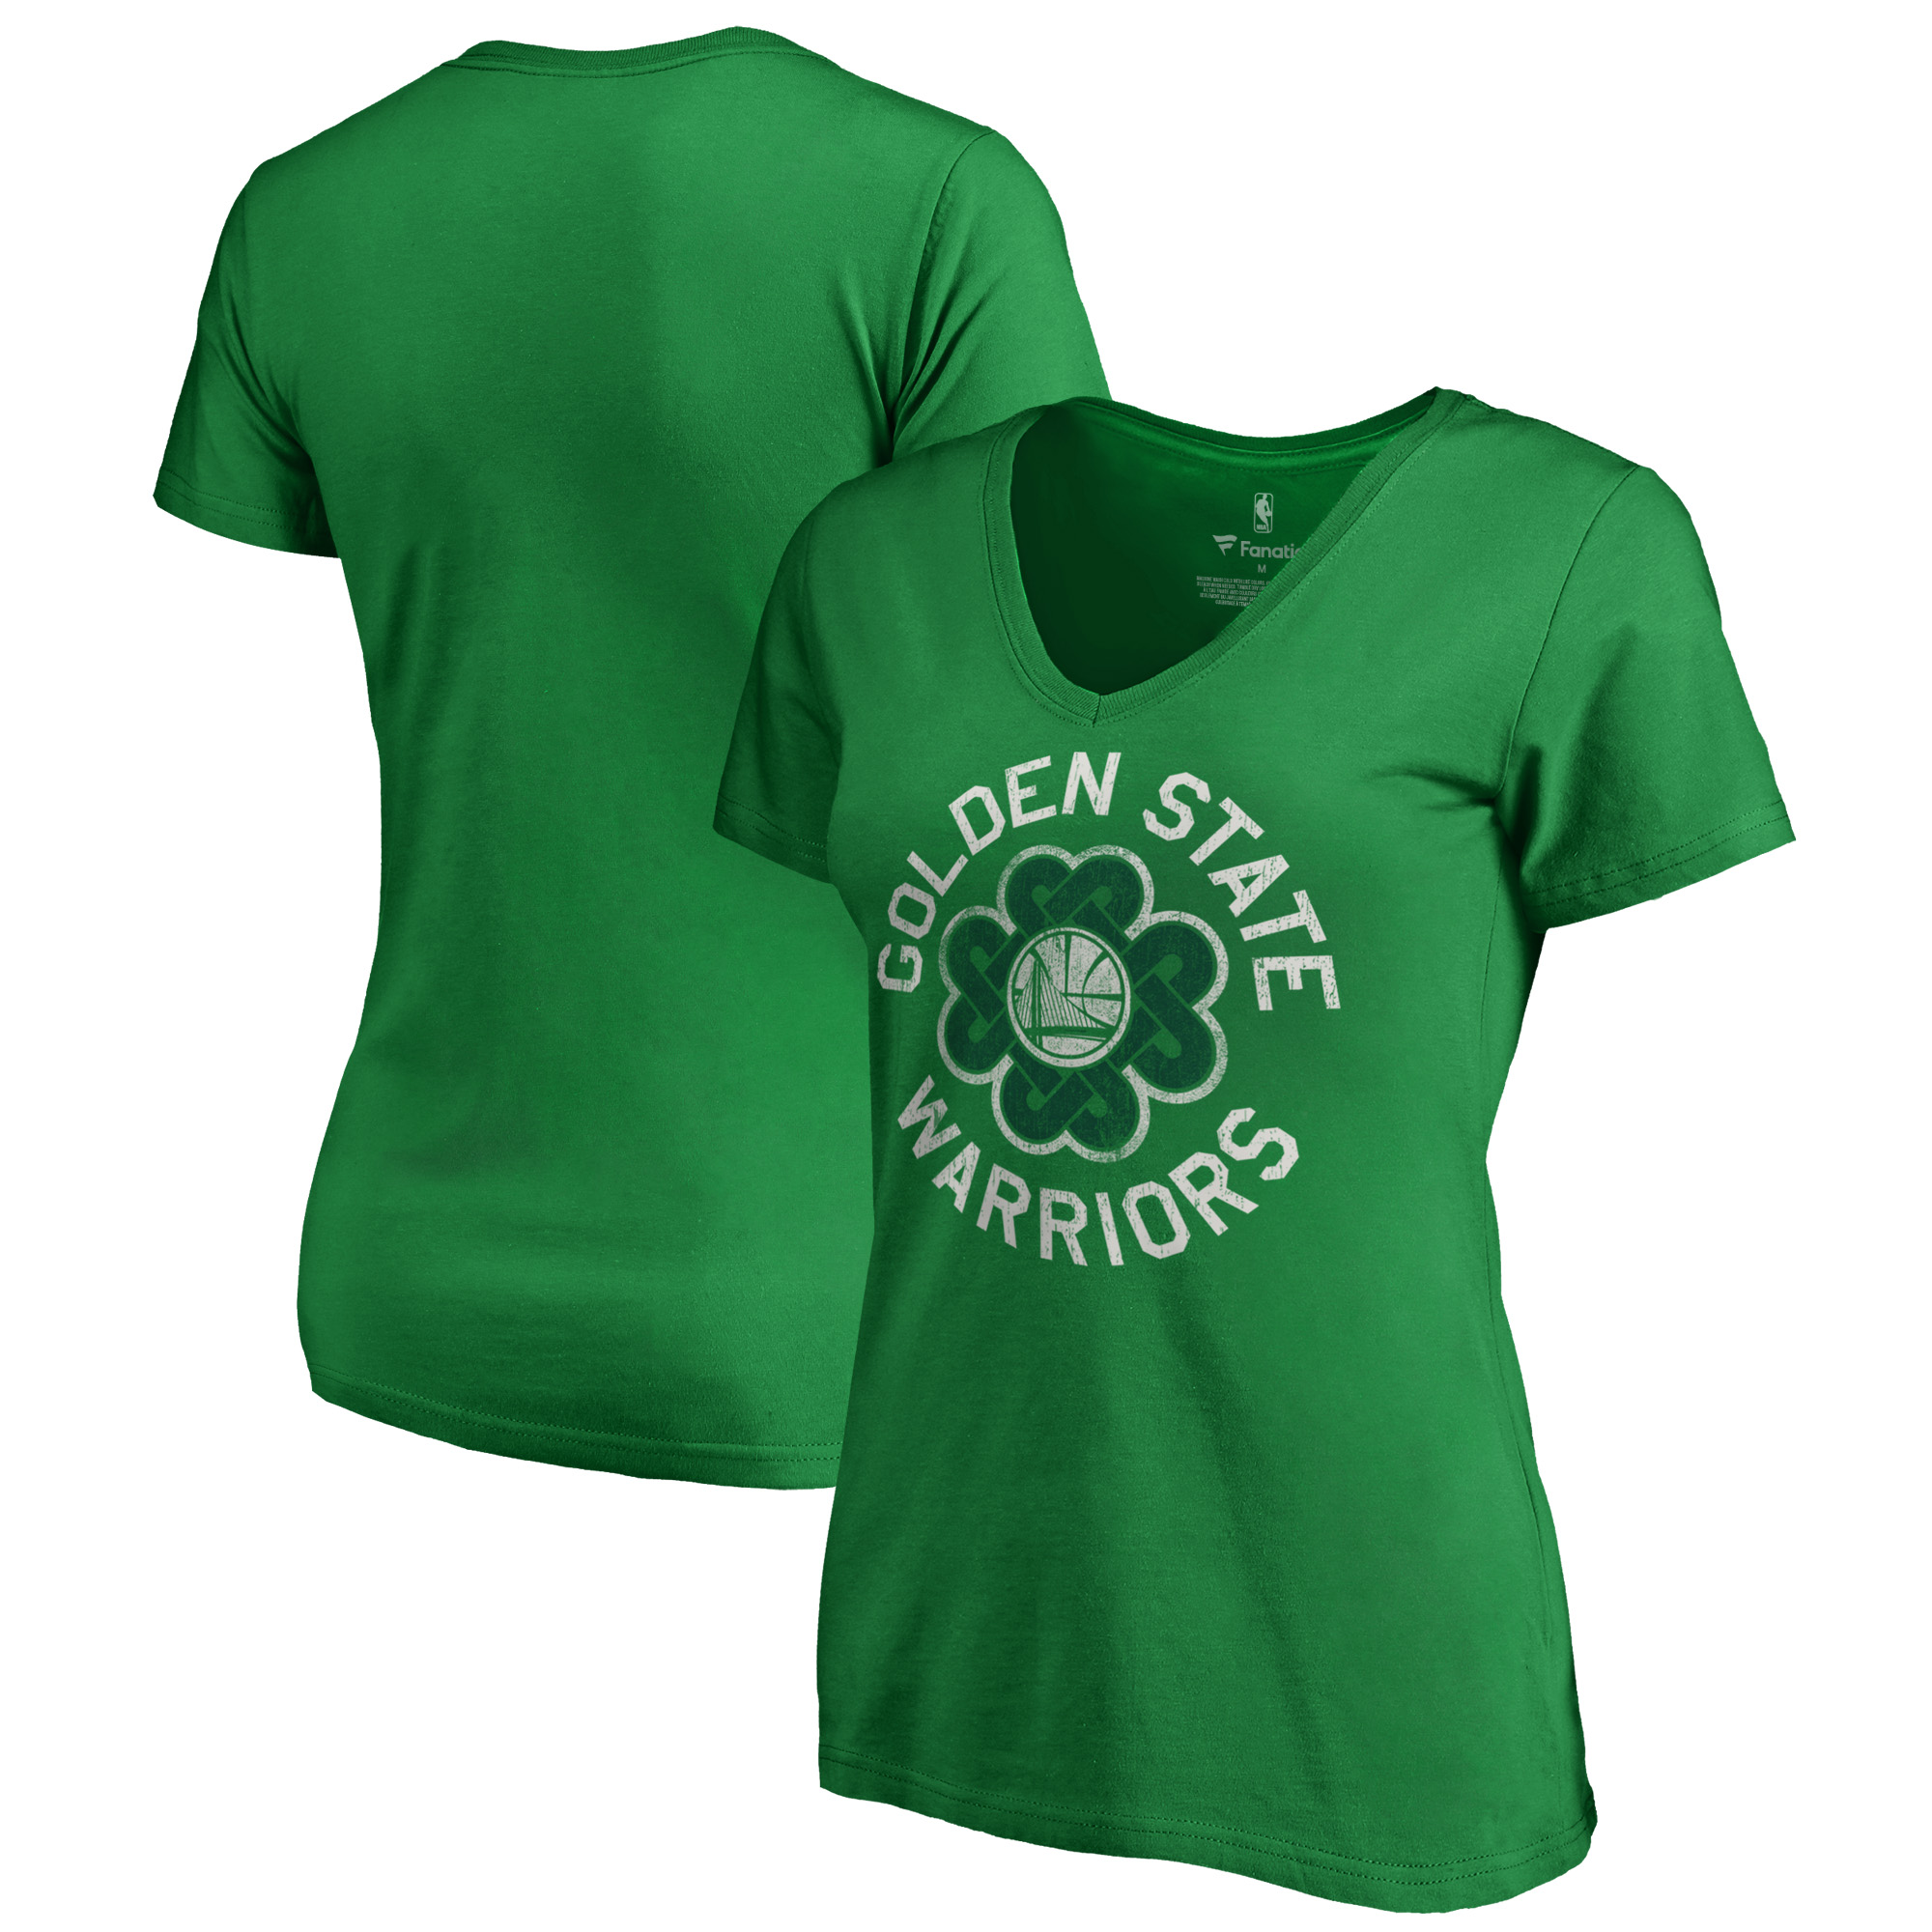 Golden State Warriors Fanatics Branded Women's Plus Size St. Patrick's Day Luck Tradition V-Neck T-Shirt - Kelly Green